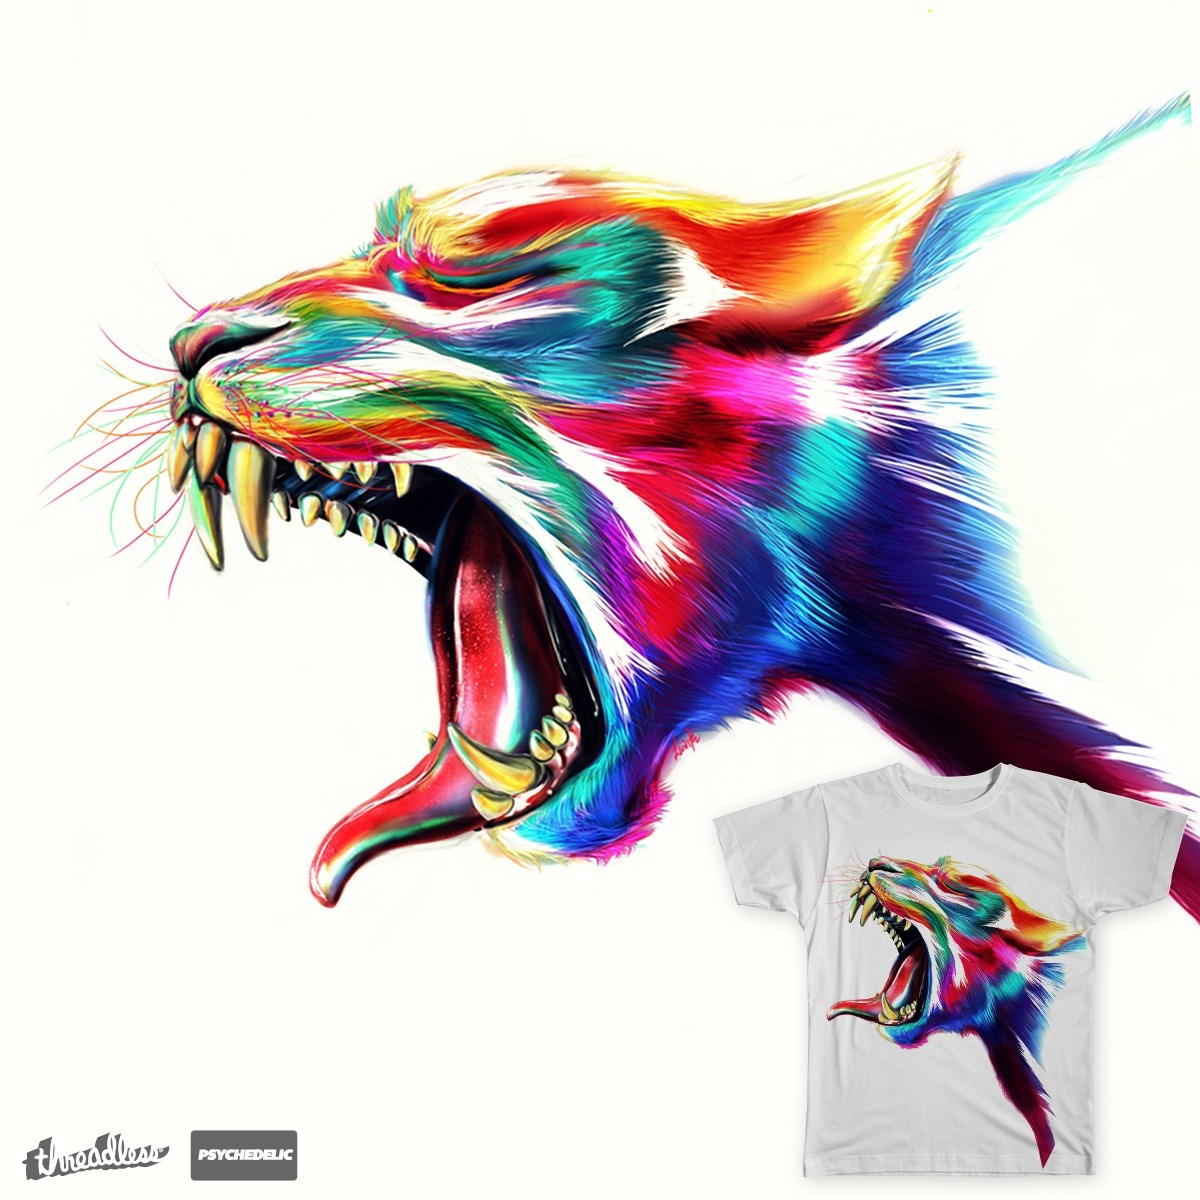 """""""Roarme"""" by Liark2zfor the Psychedelic design challenge. Needless to say, this design is mind-bendingly awesome."""